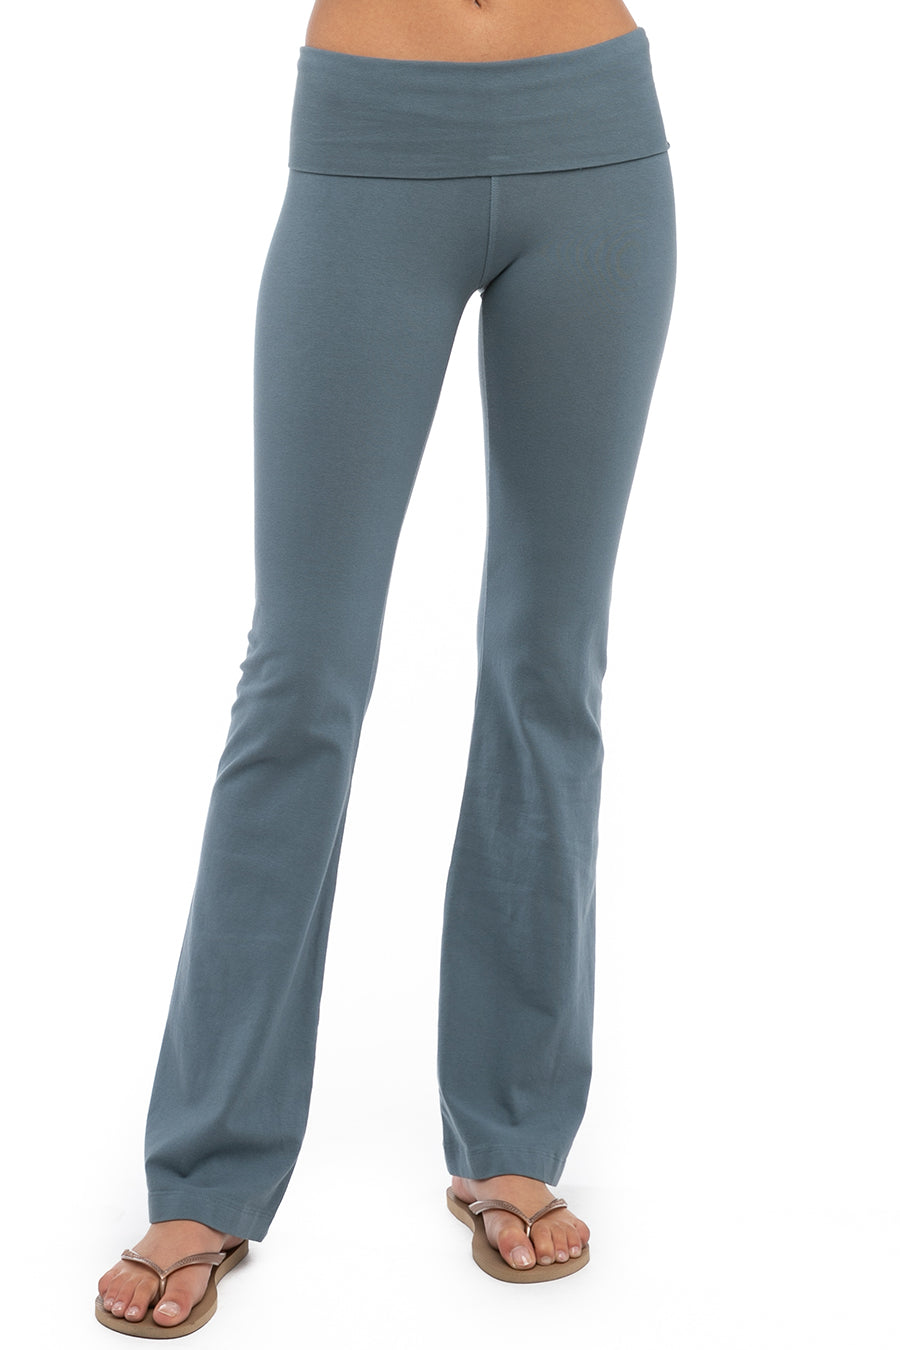 Hard Tail Forever Rolldown Bootleg Flare Pants - Steel Blue - XL